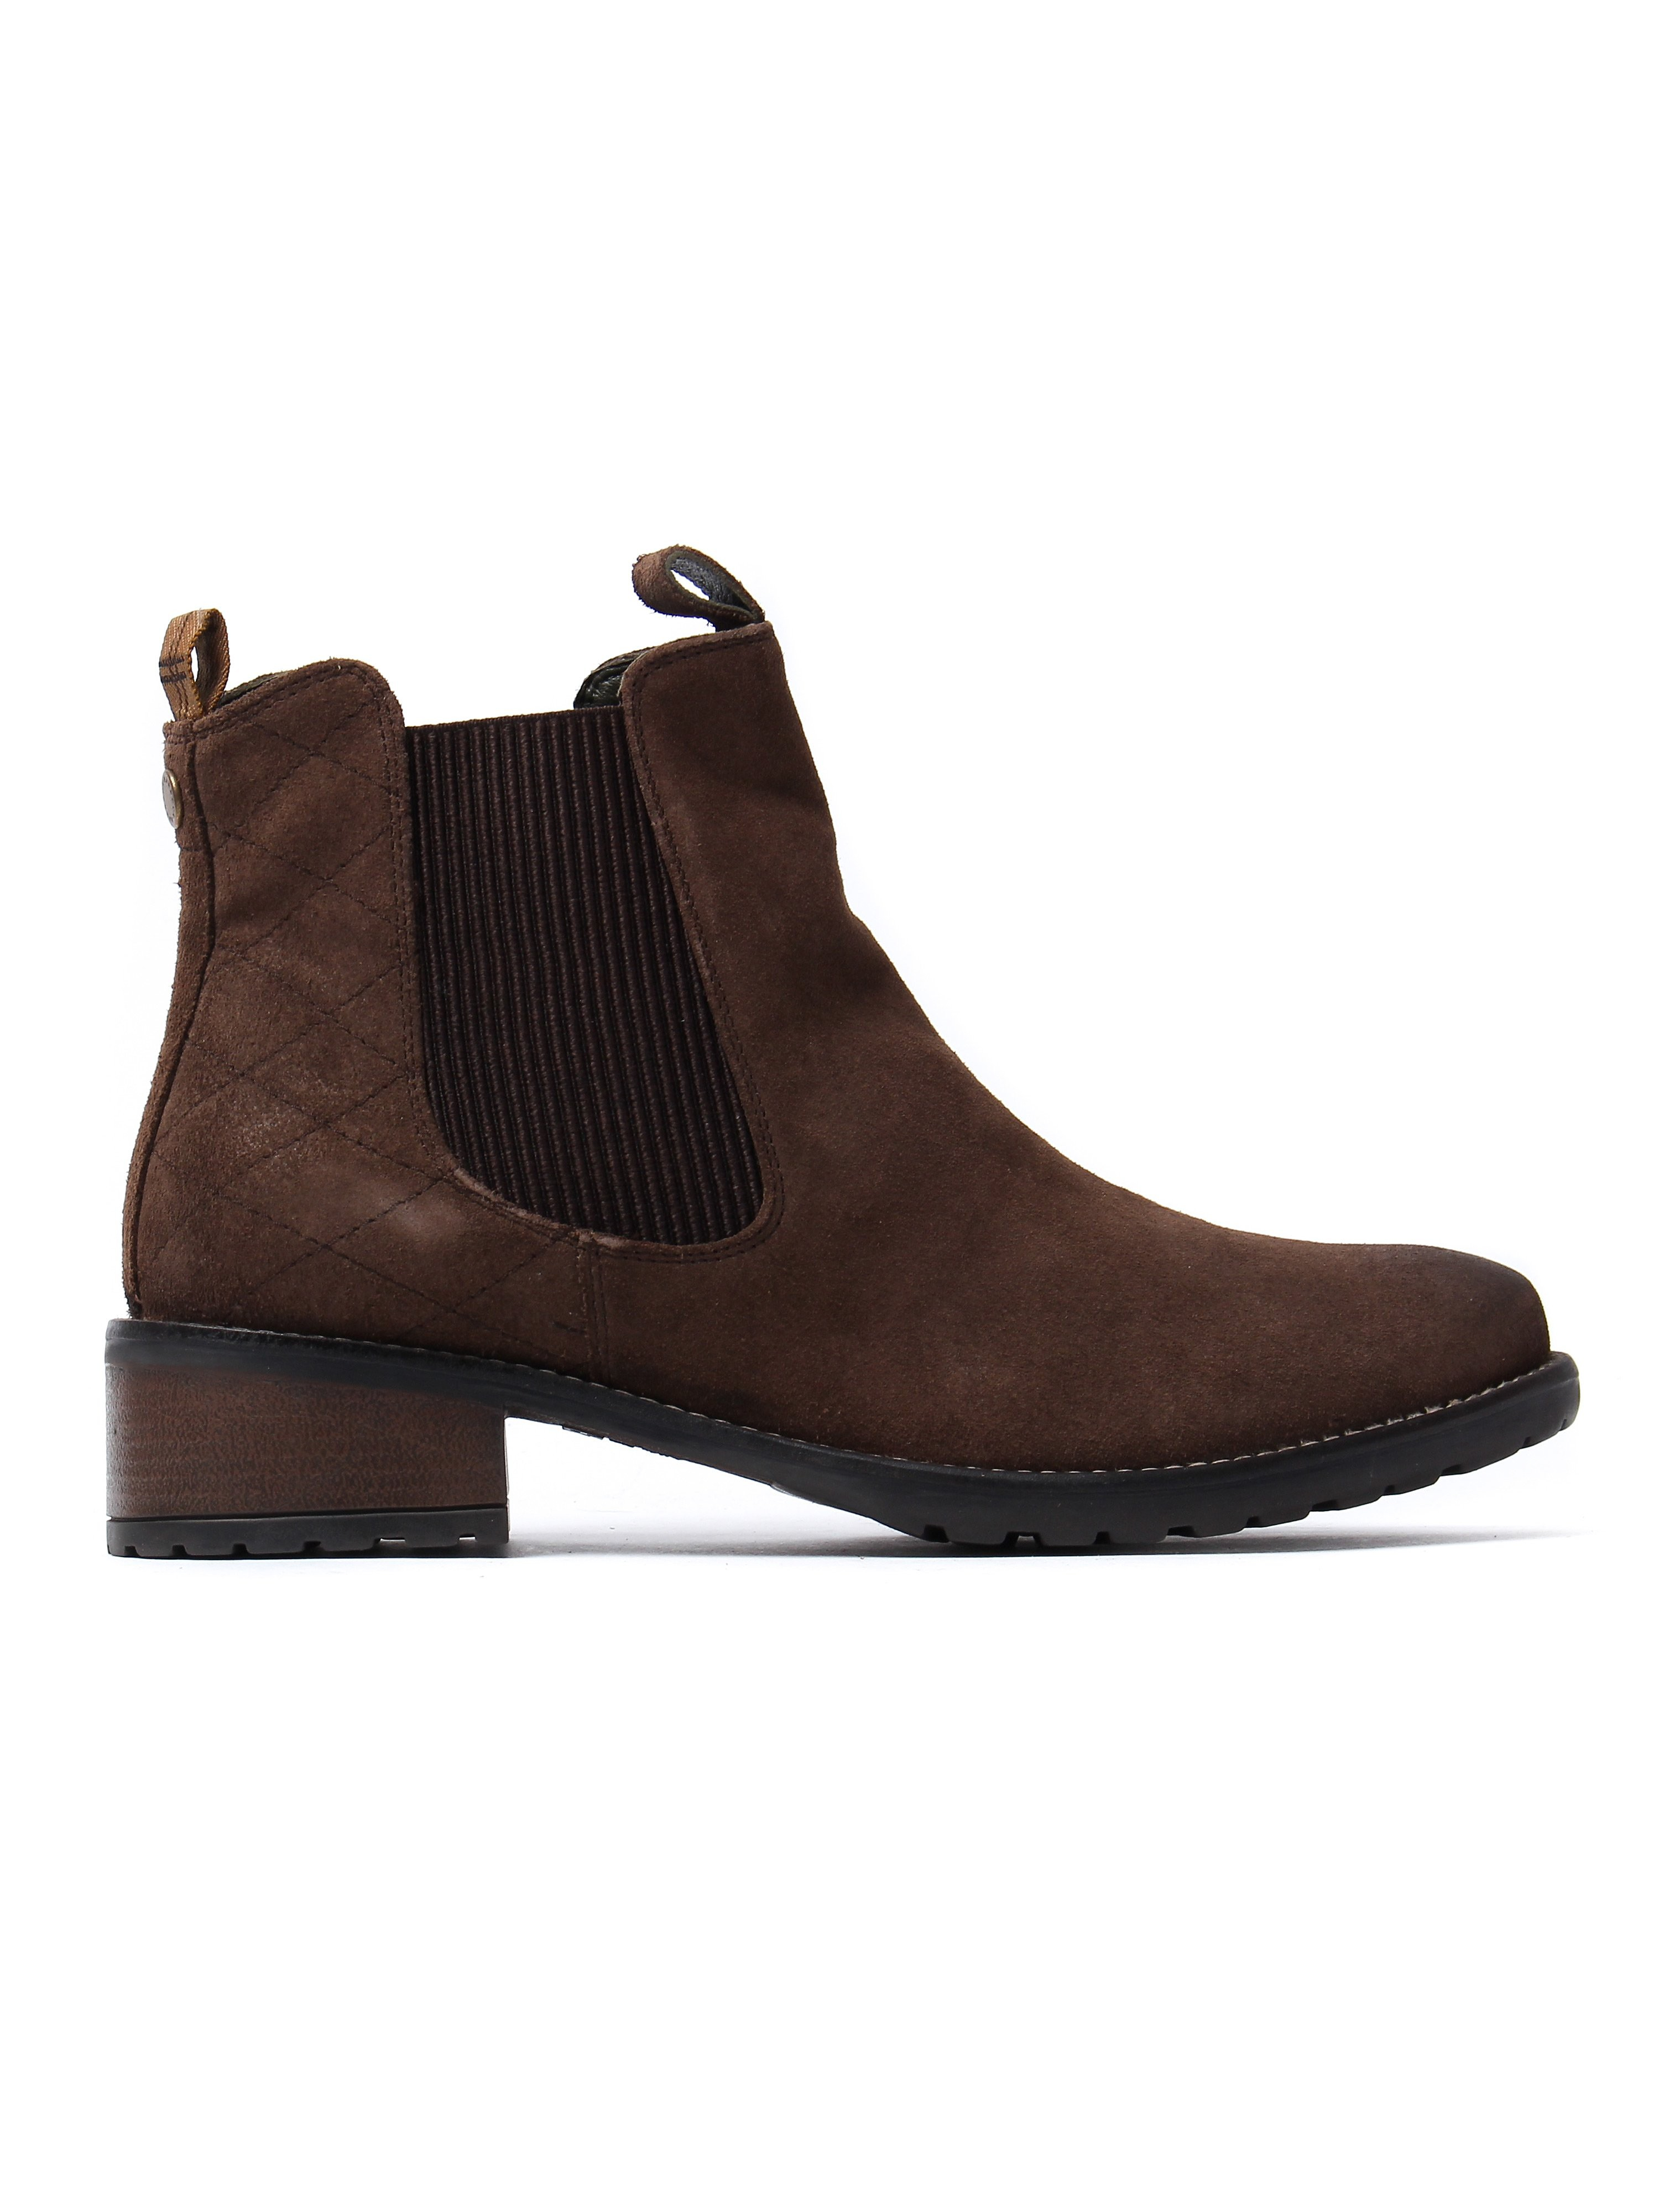 Barbour Women's Latimer Chelsea Boots - Brown Waxy